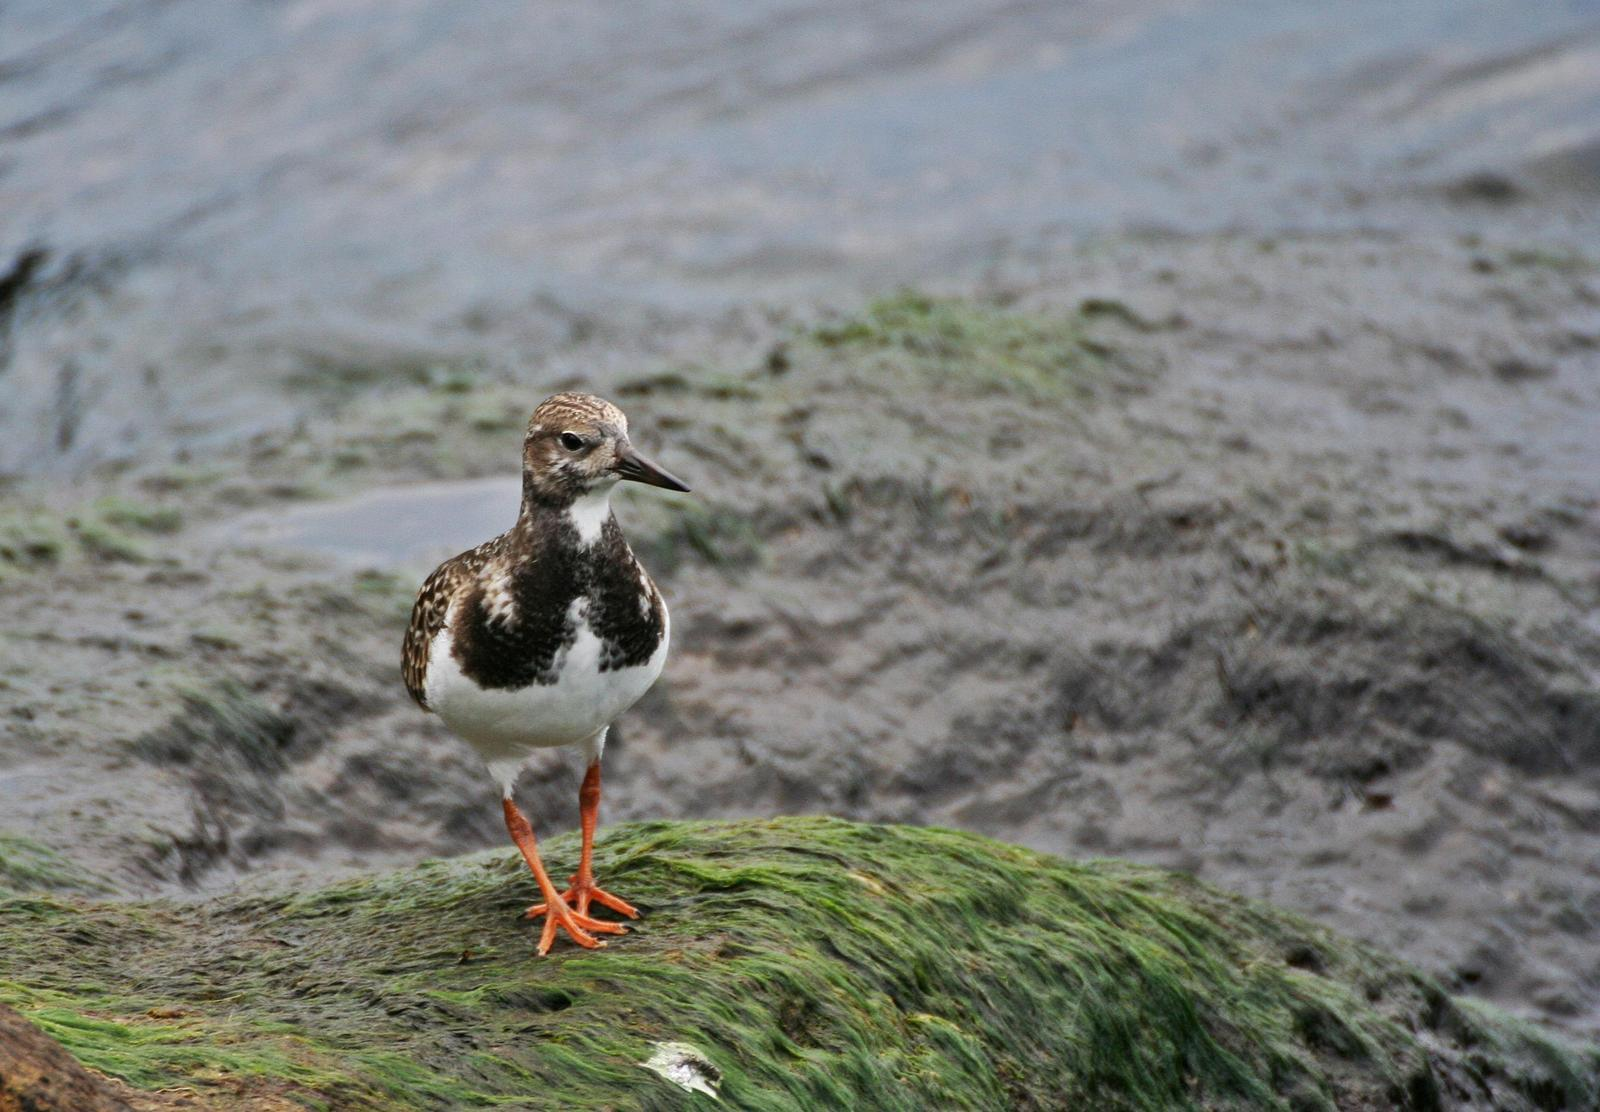 Ruddy Turnstone Photo by Andrew Theus